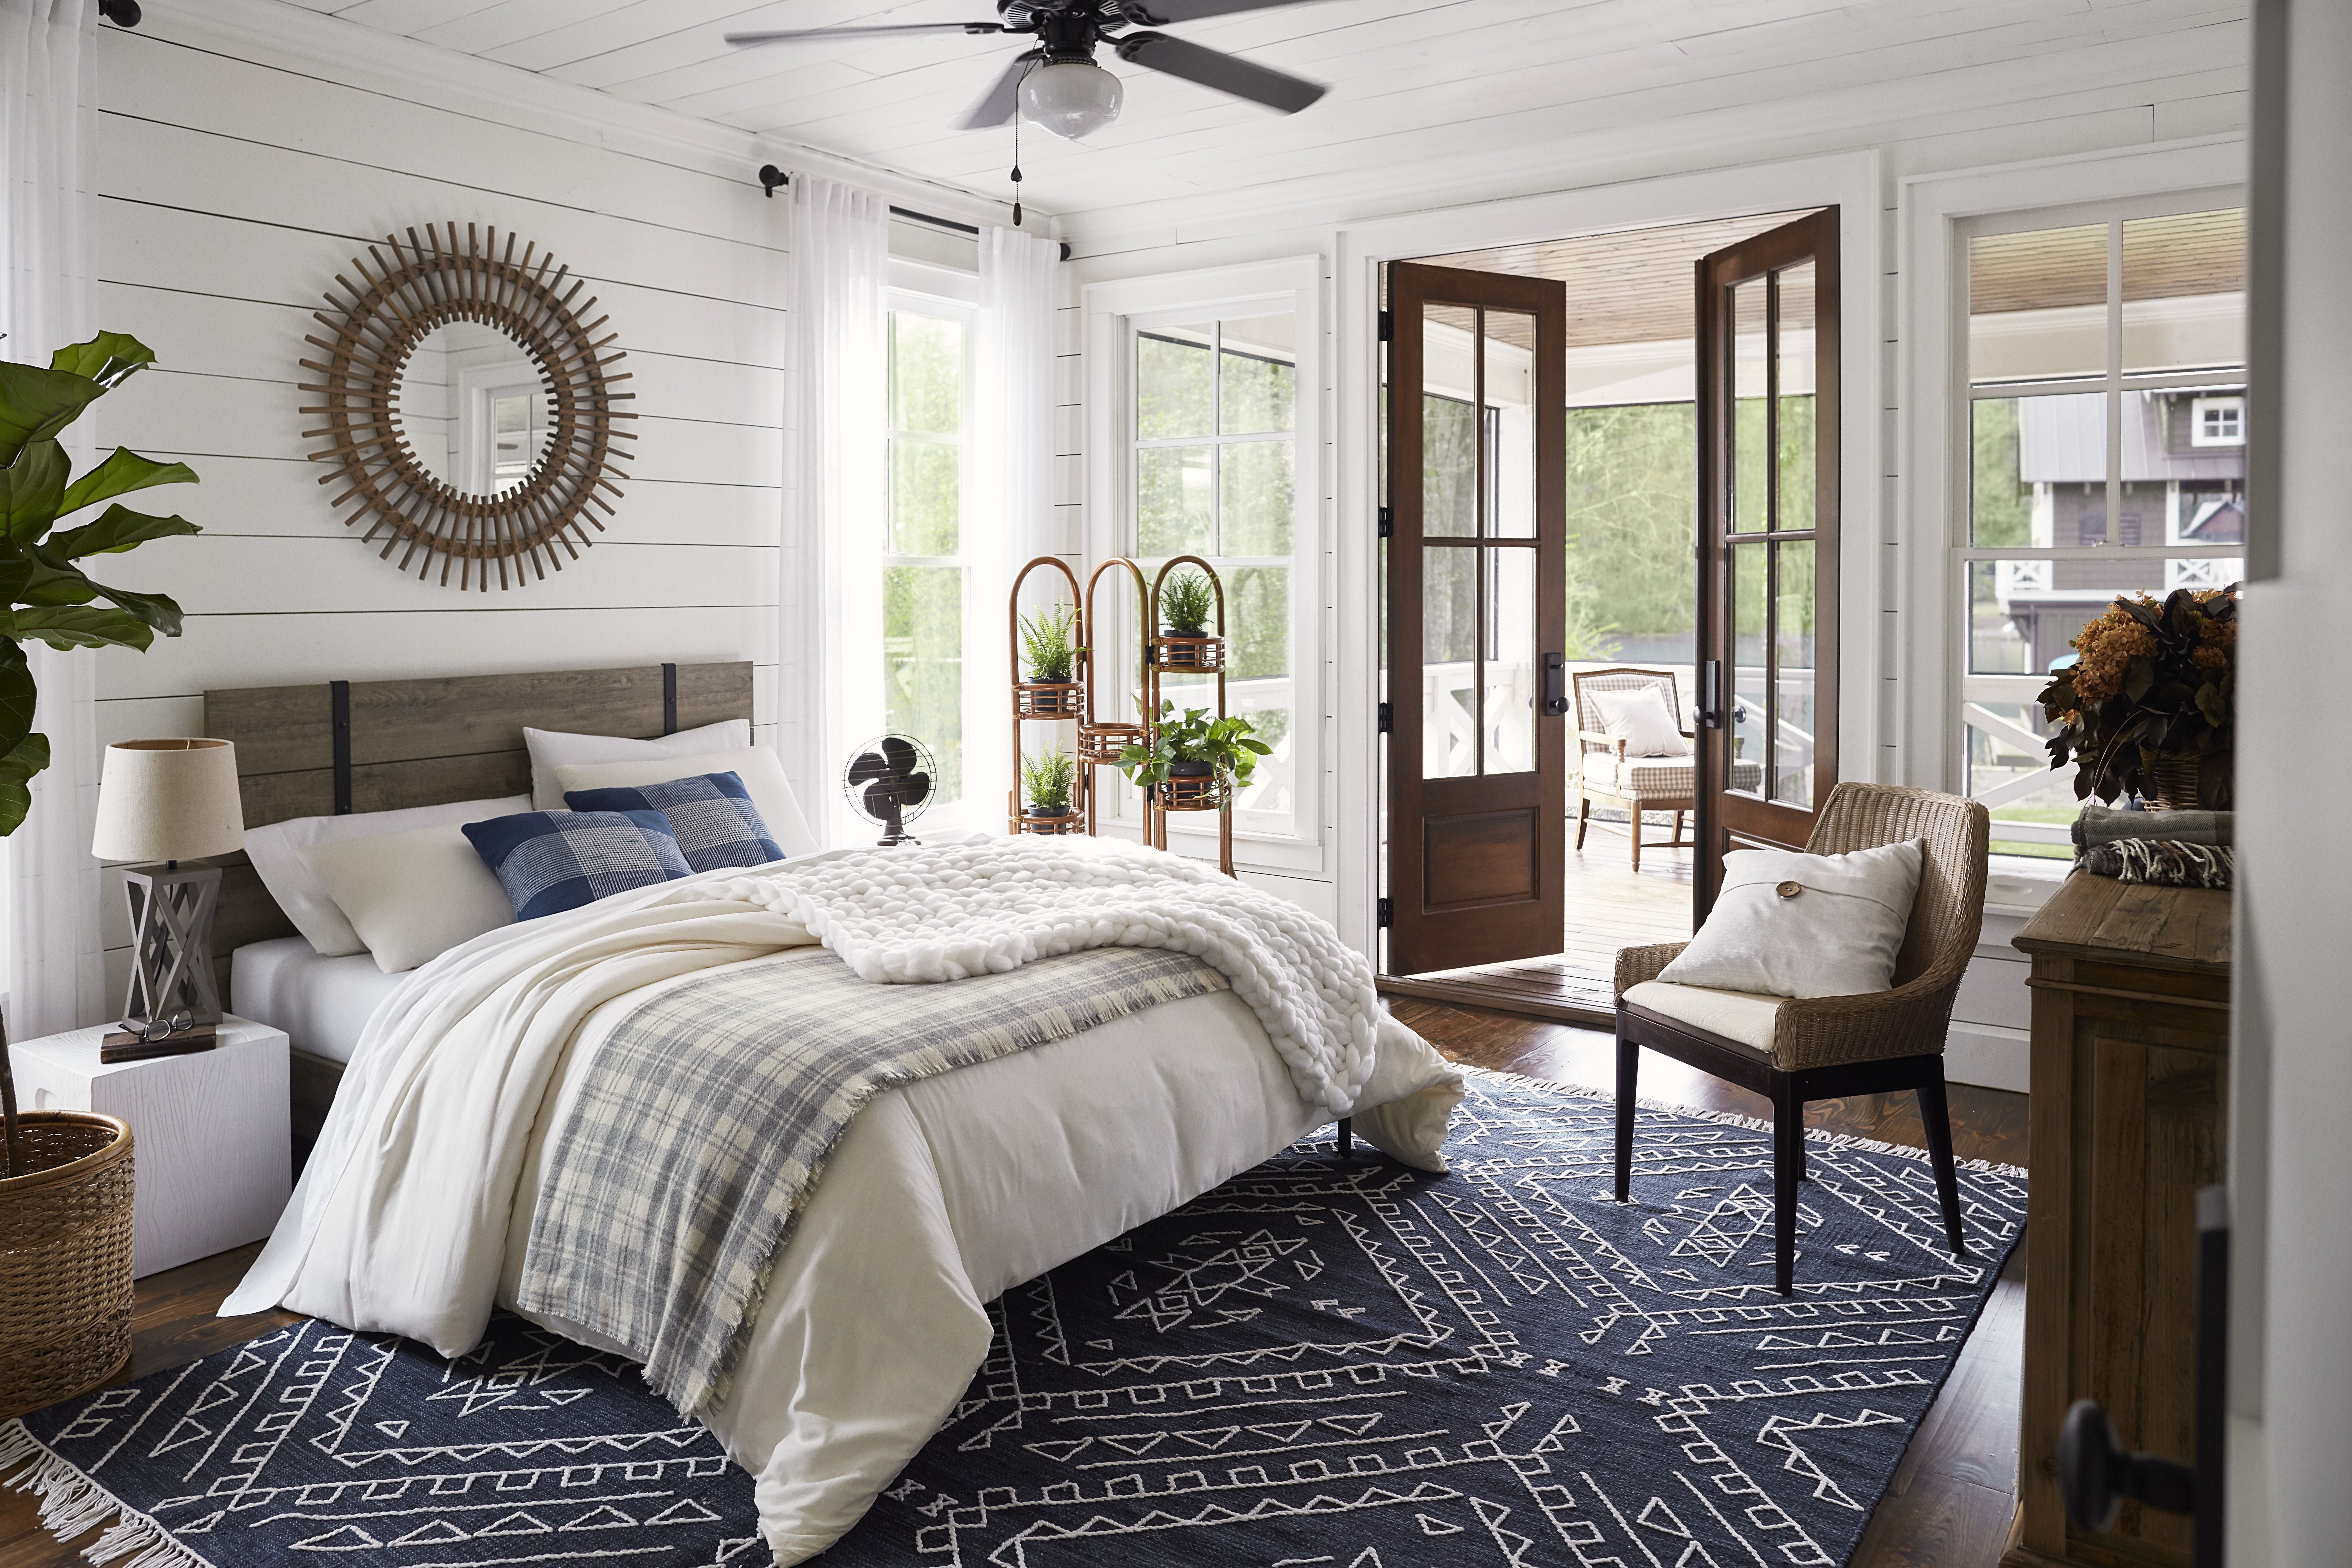 Create a Lakeside Bedroom Aesthetic No Matter Where You're